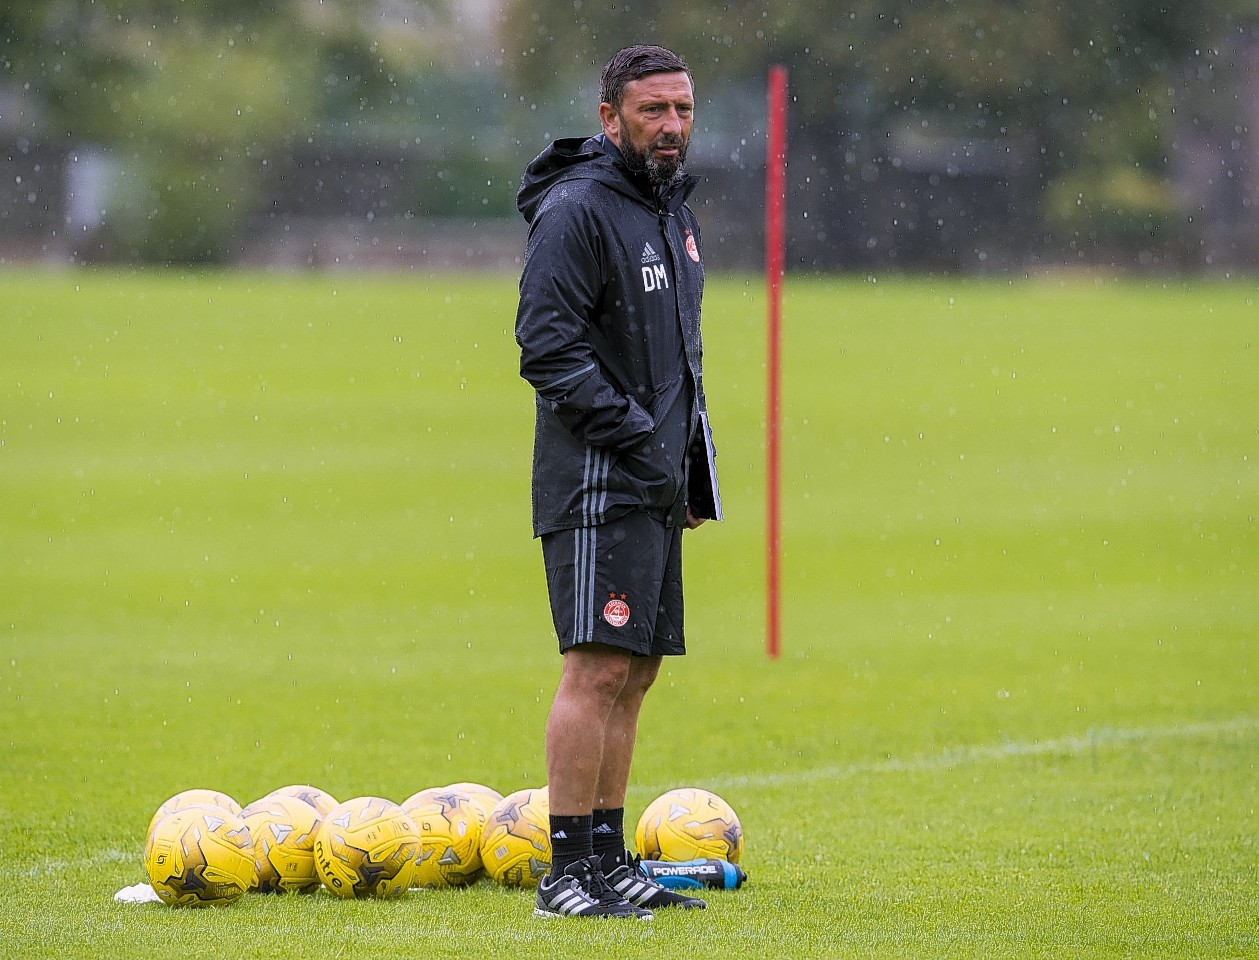 Dons manager Derek Mcinnes watched his side beat Brechin